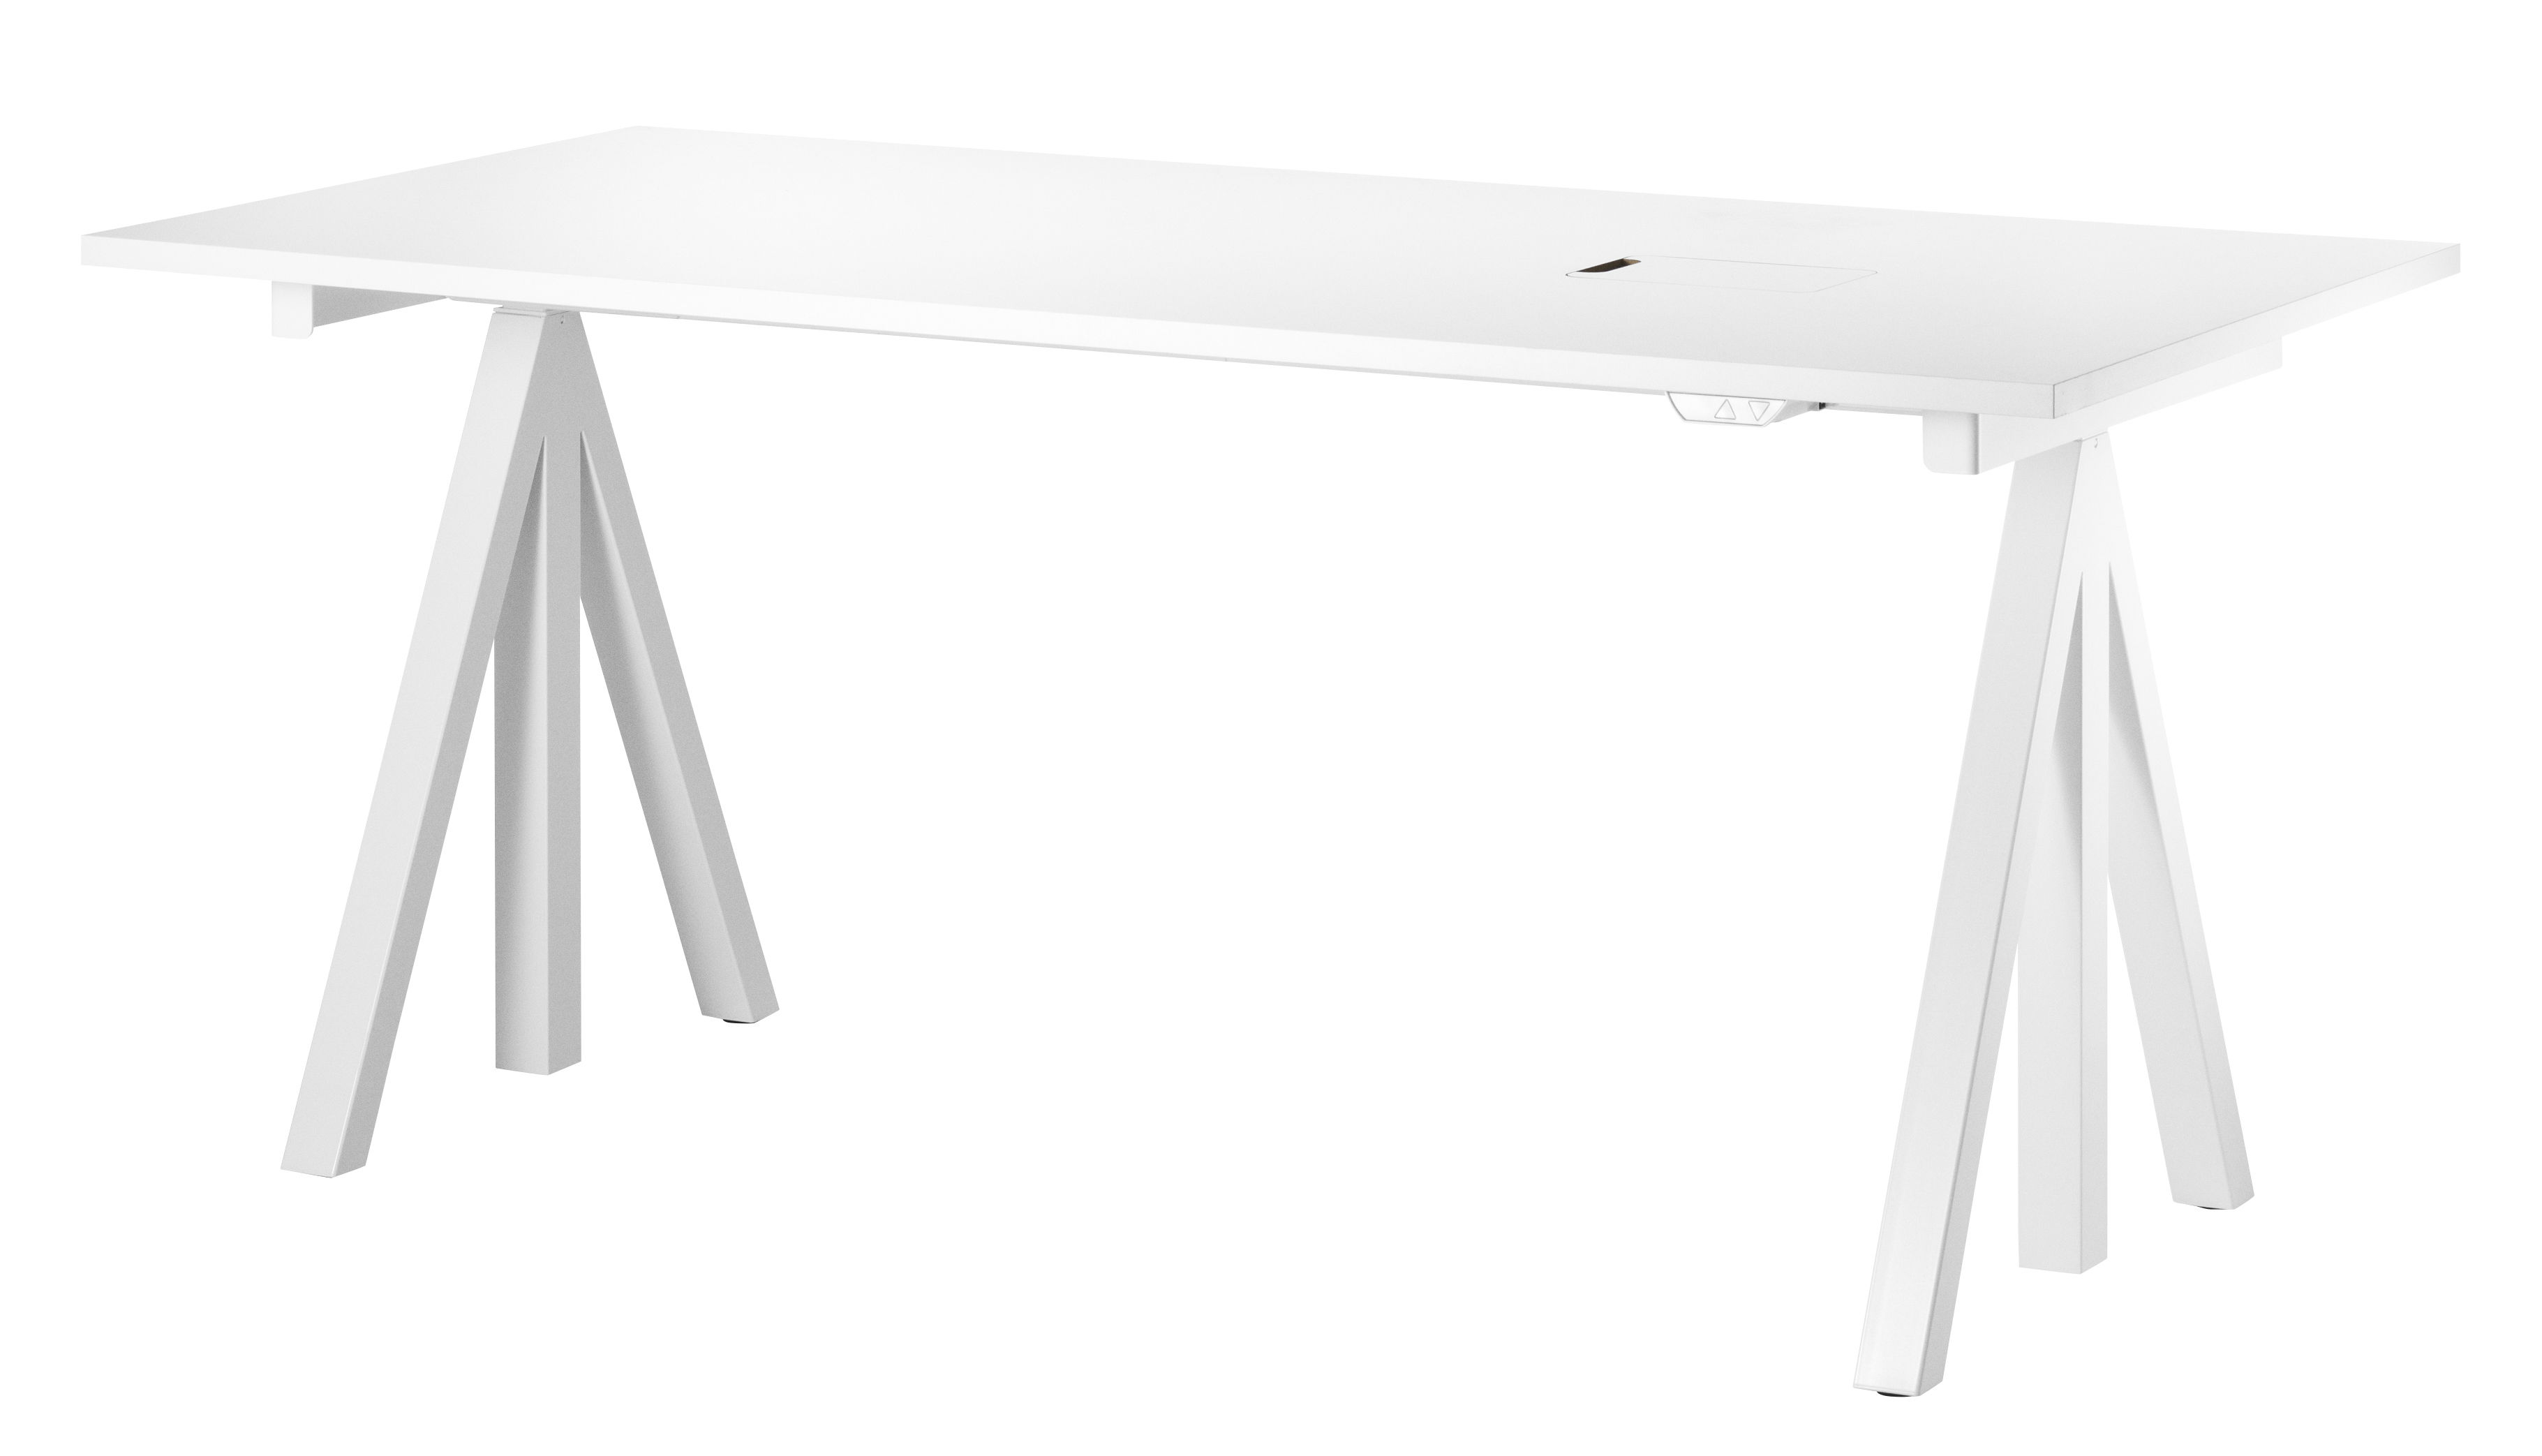 Furniture - Office Furniture - String Works Legs - For desk - Motorized by String Furniture - White - Lacquered steel